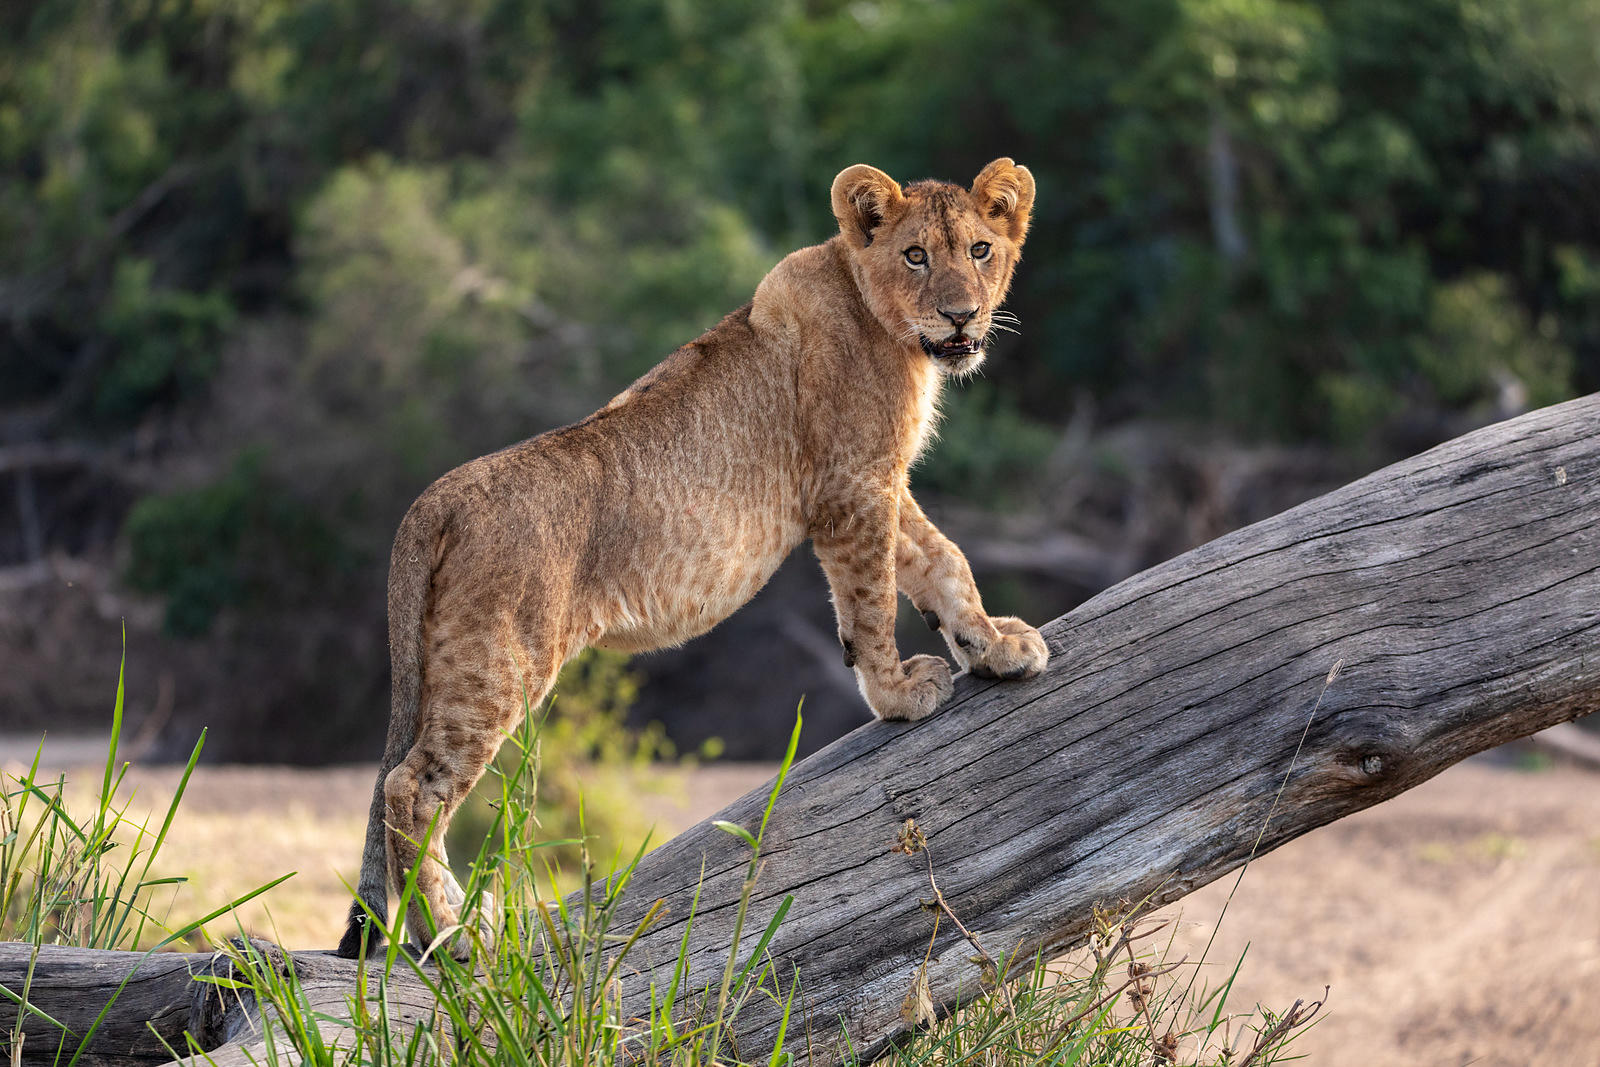 A Young Lion Stands on a Fallen Tree